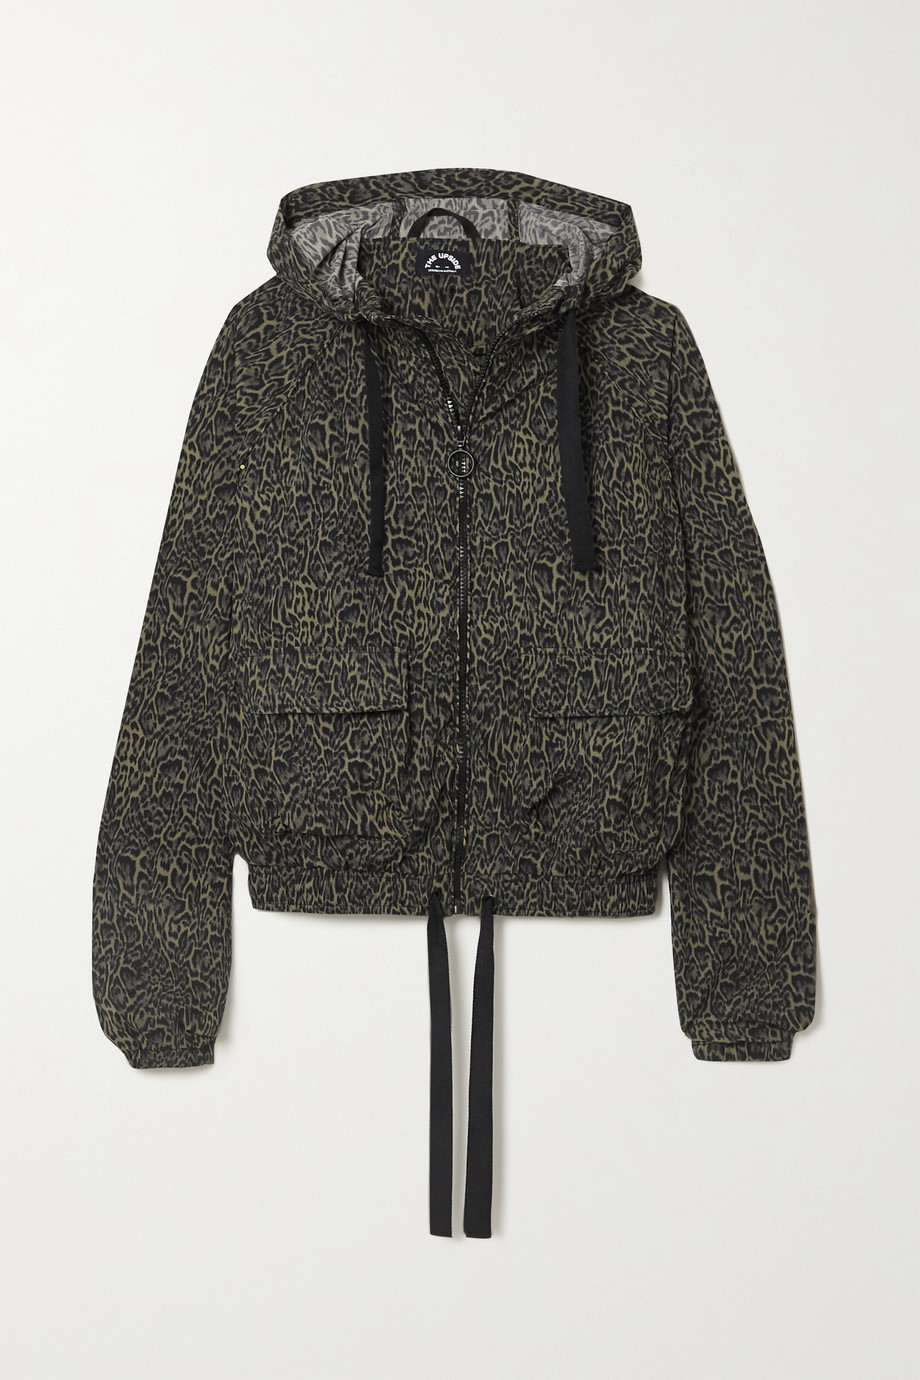 THE UPSIDE Ramy hooded leopard-print stretch-shell jacket